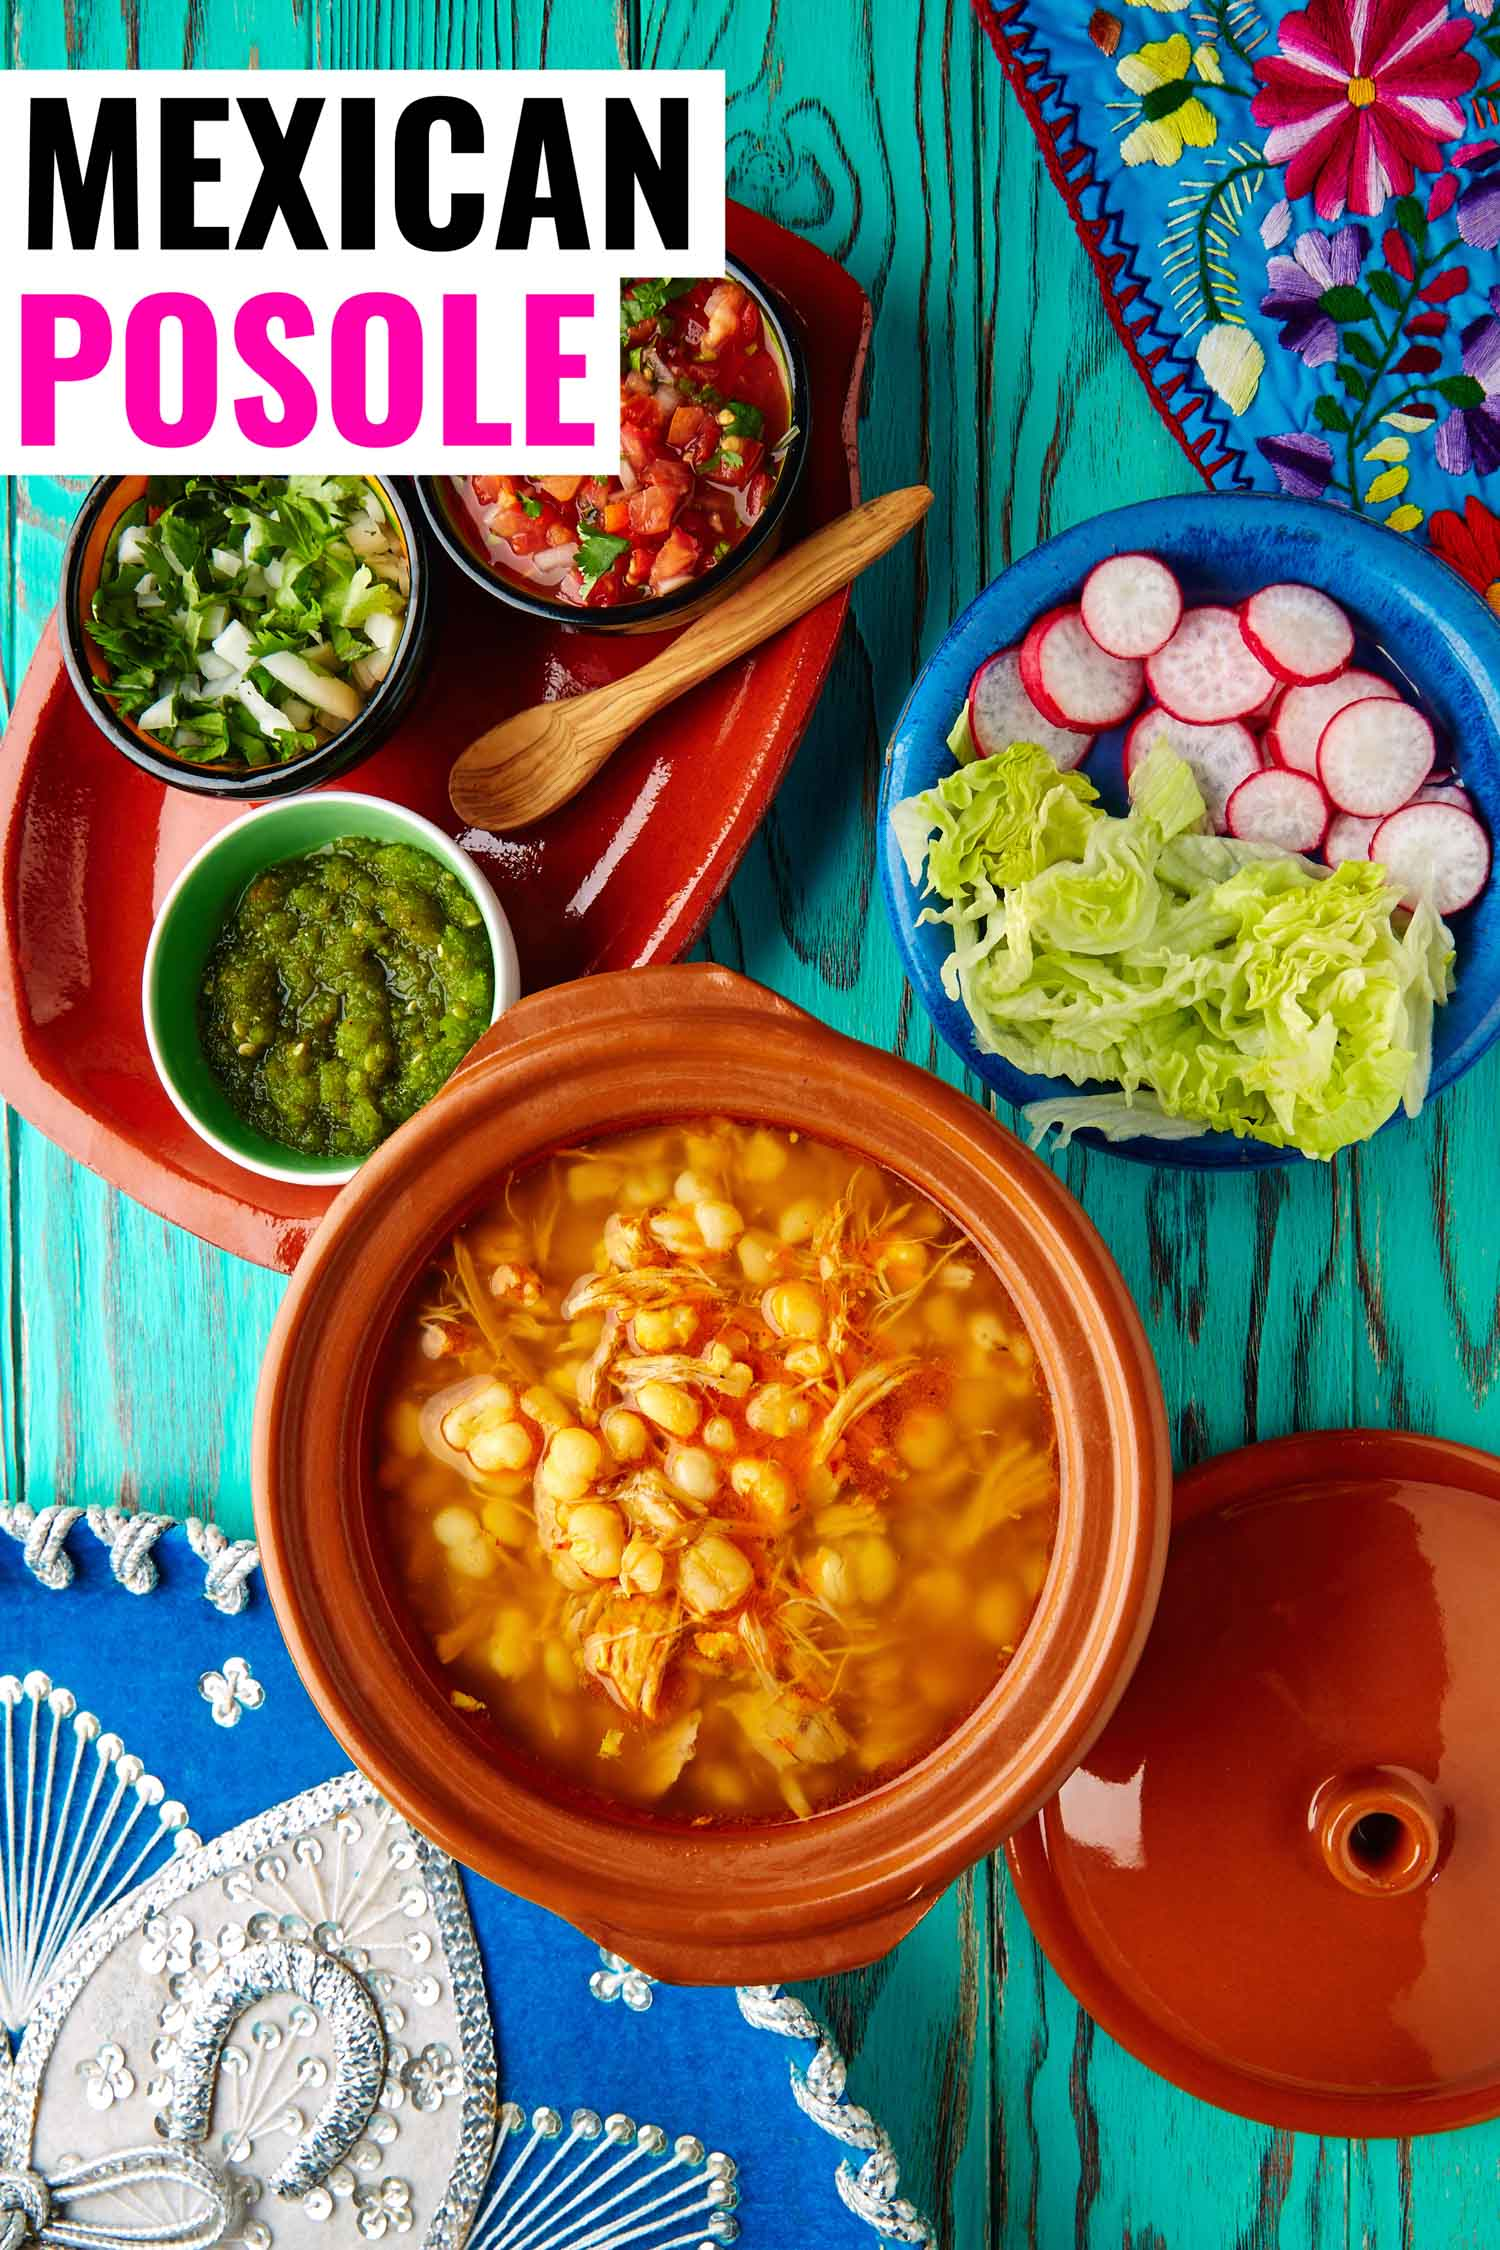 Mexican stew called pozole on a bright background with all of the garnishes like radish, lettuce and salsa